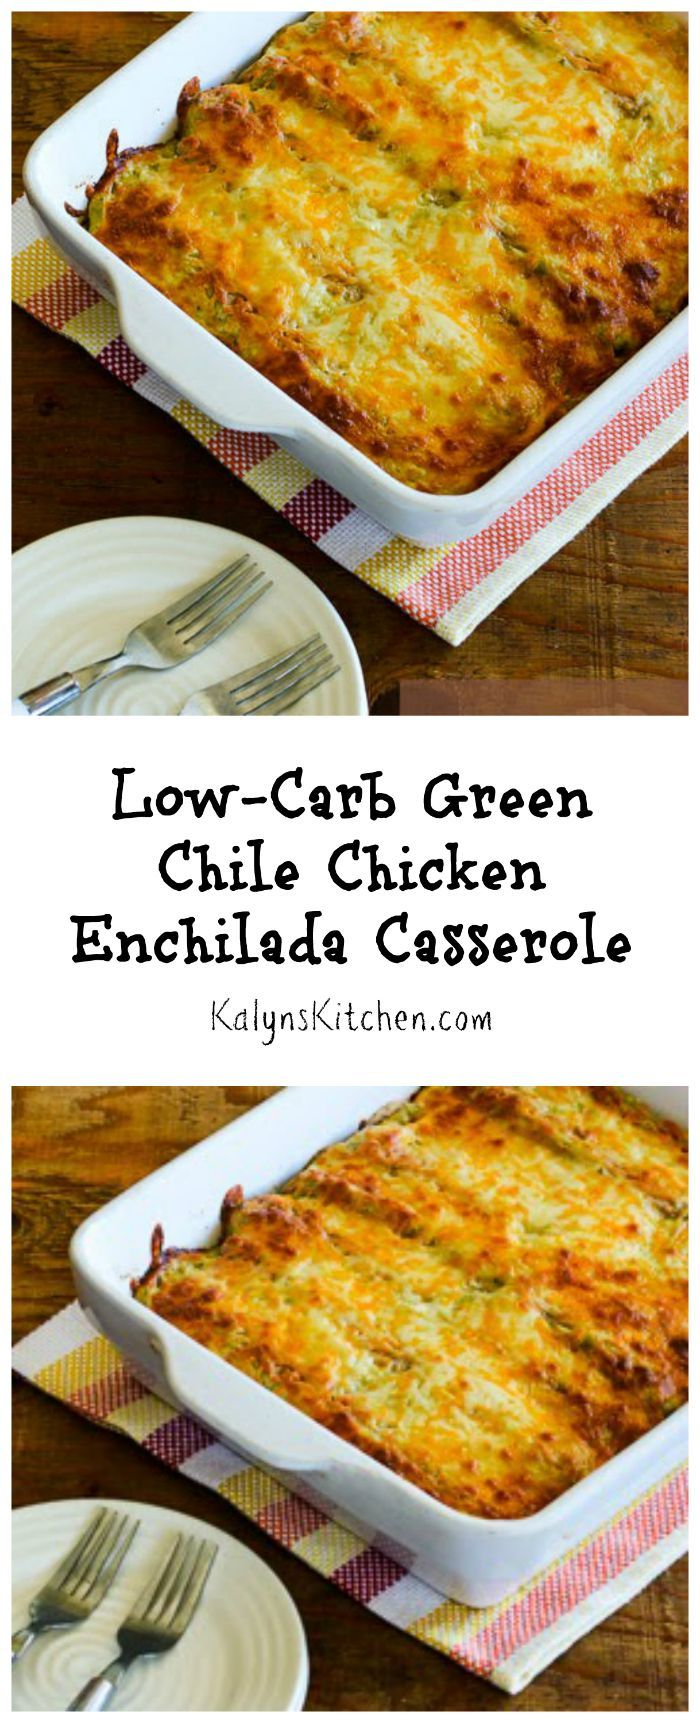 Low Carb Green Chile Chicken Enchilada Casserole Enchiladas Green And Chicken Enchiladas